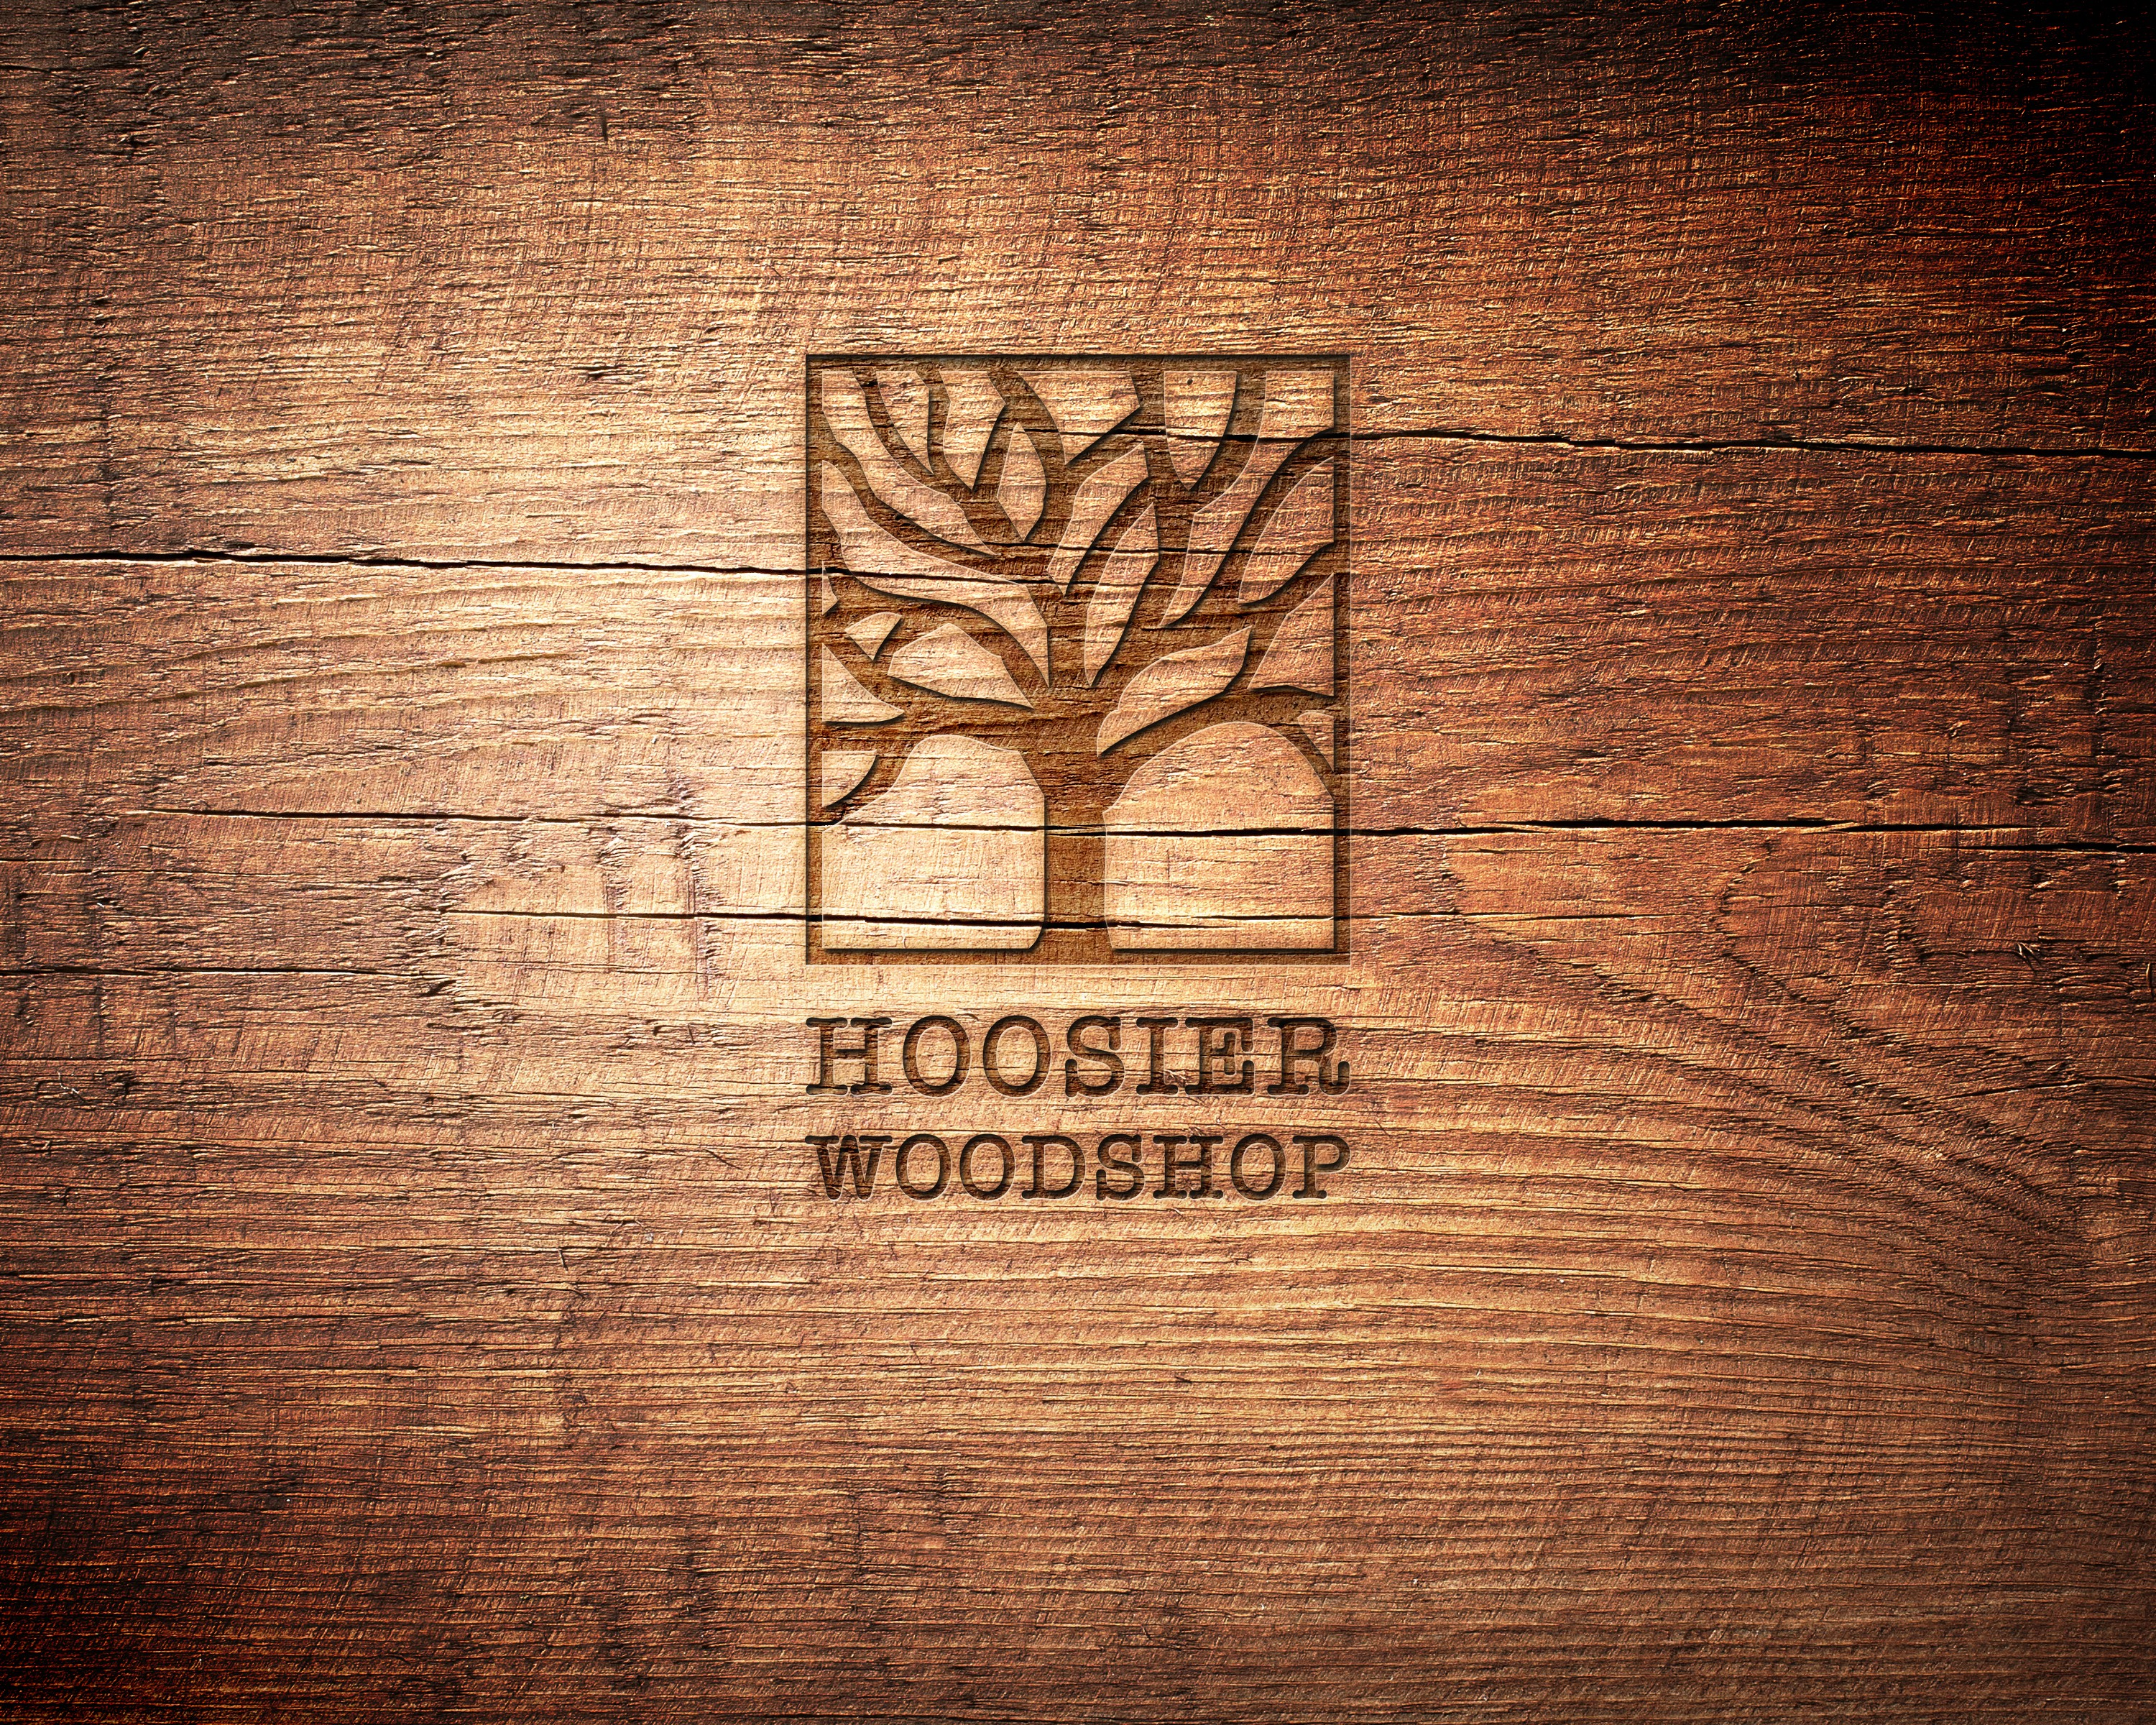 Hoosier Woodshop looking to repurpose trees that had to be removed